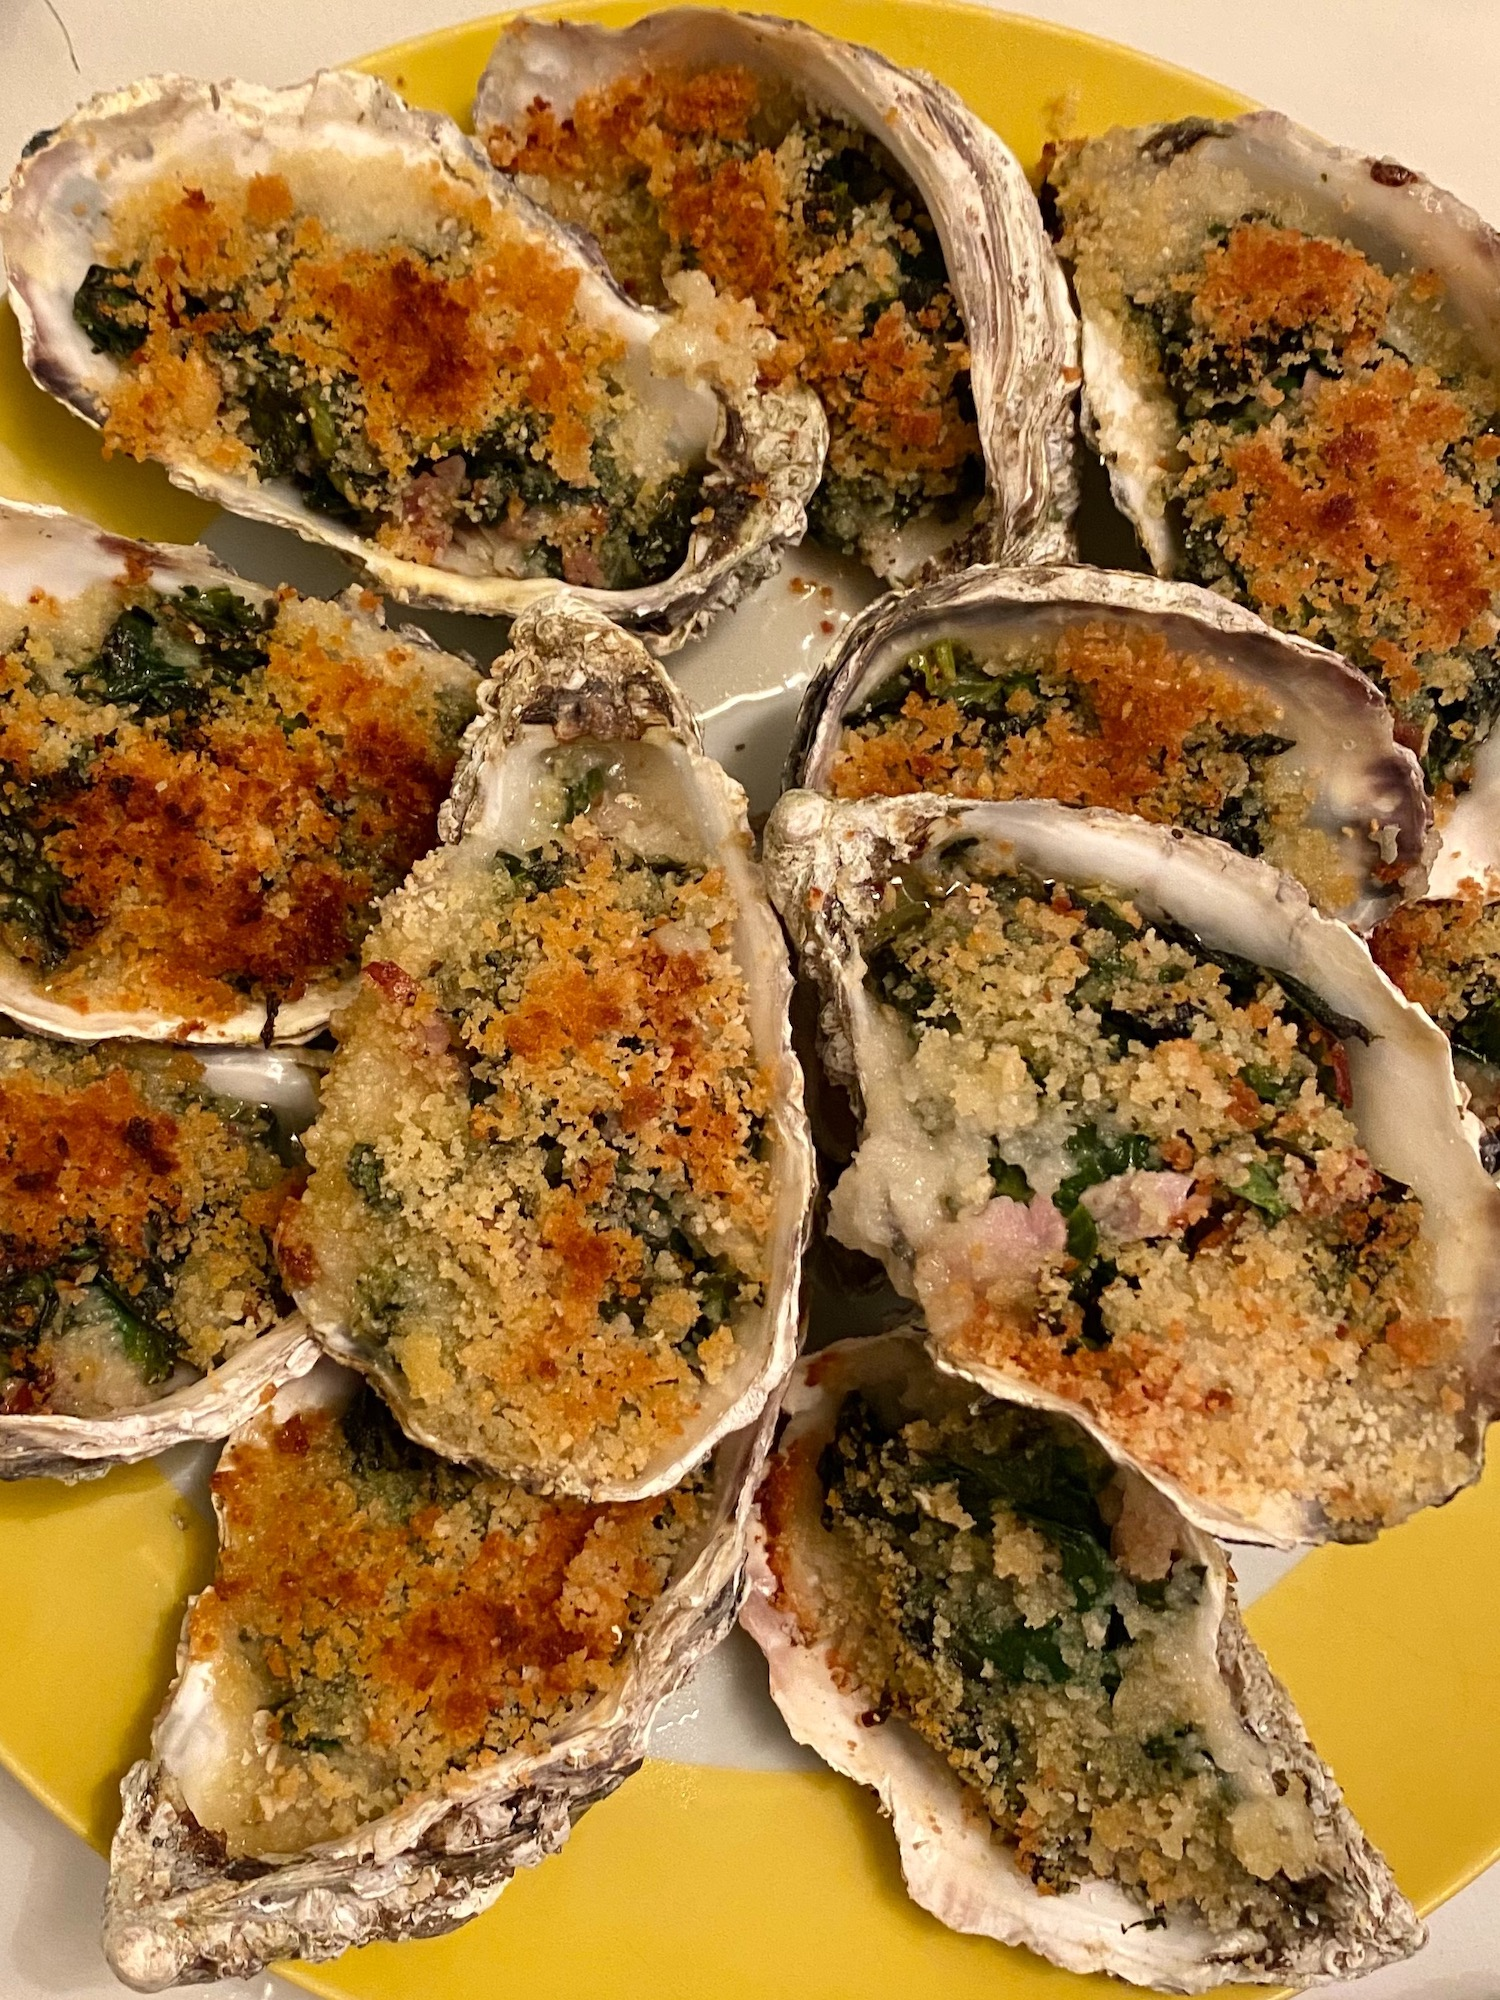 confinement 2.0 week two cooking oysters rockefeller